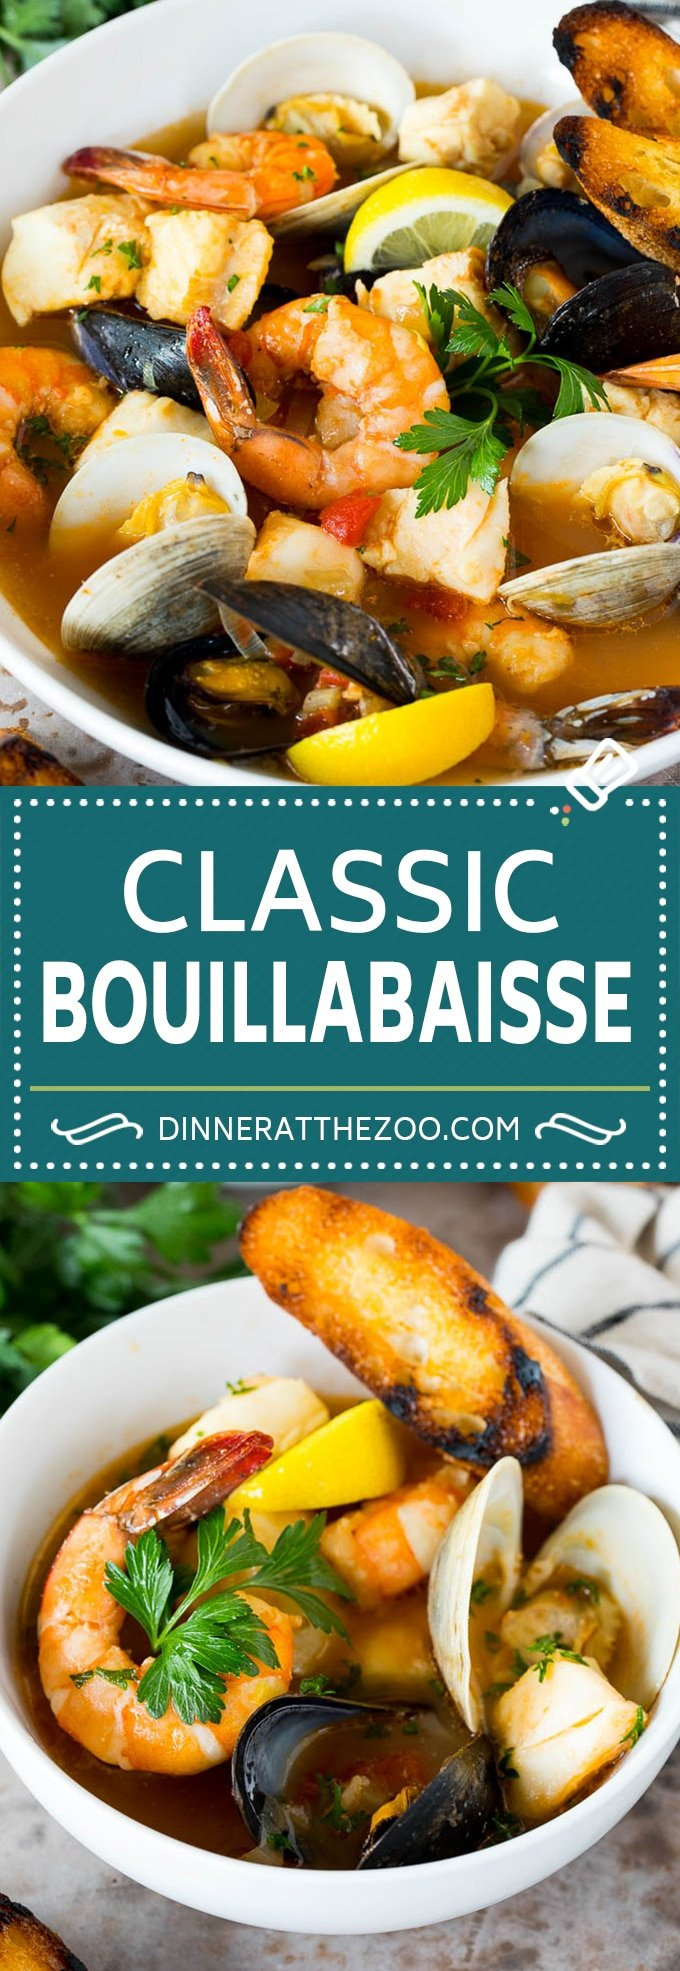 This bouillabaisse is French seafood stew with fresh fish, shrimp, clams and mussels, all simmered together in a flavorful broth.